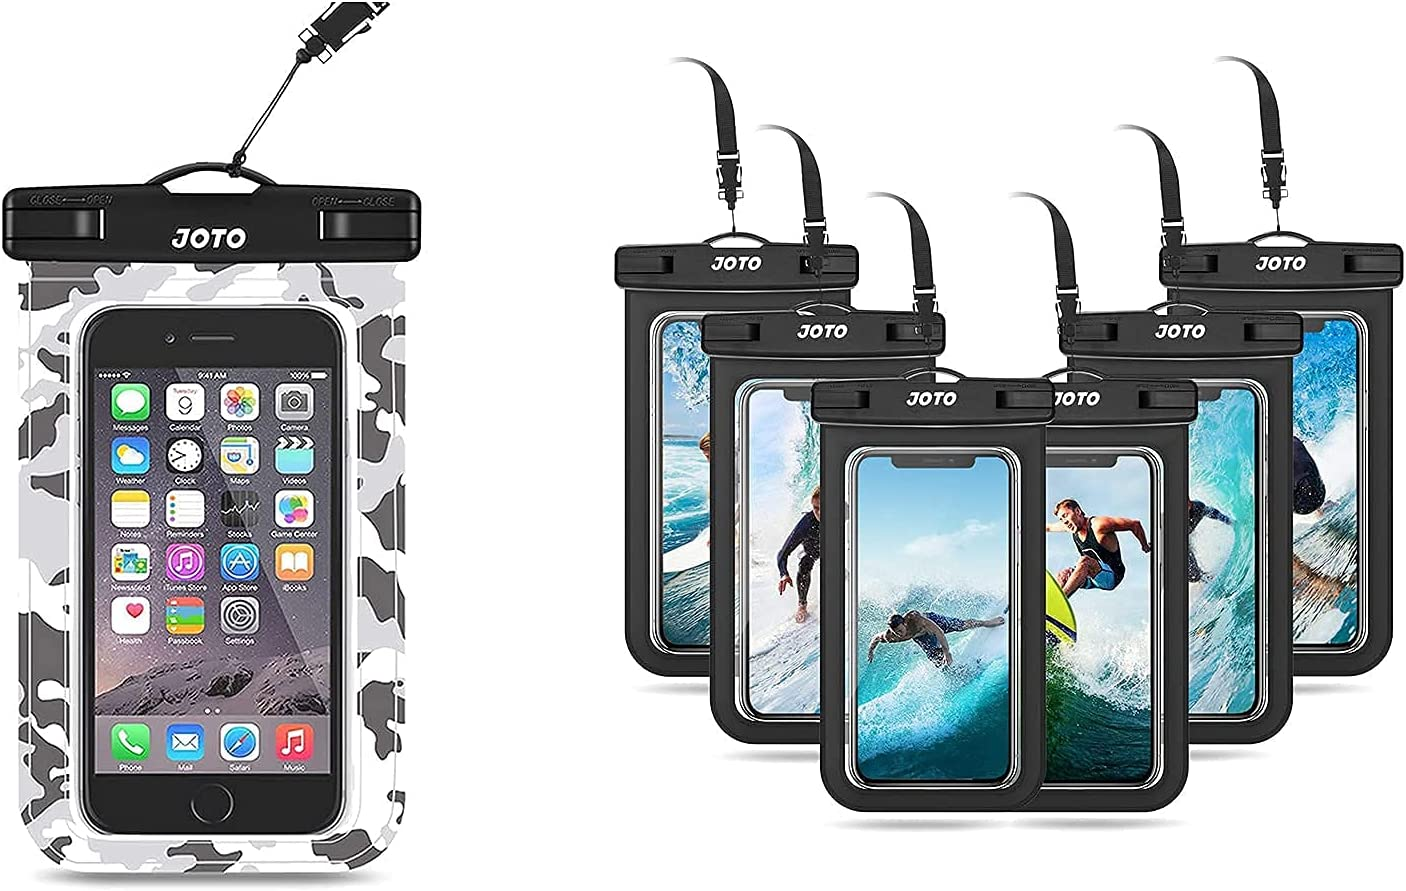 JOTO Universal Waterproof Pouch Cellphone Dry Bag Case Bundle with [6 Pack] Universal Waterproof Pouch for Phones up to 7.0